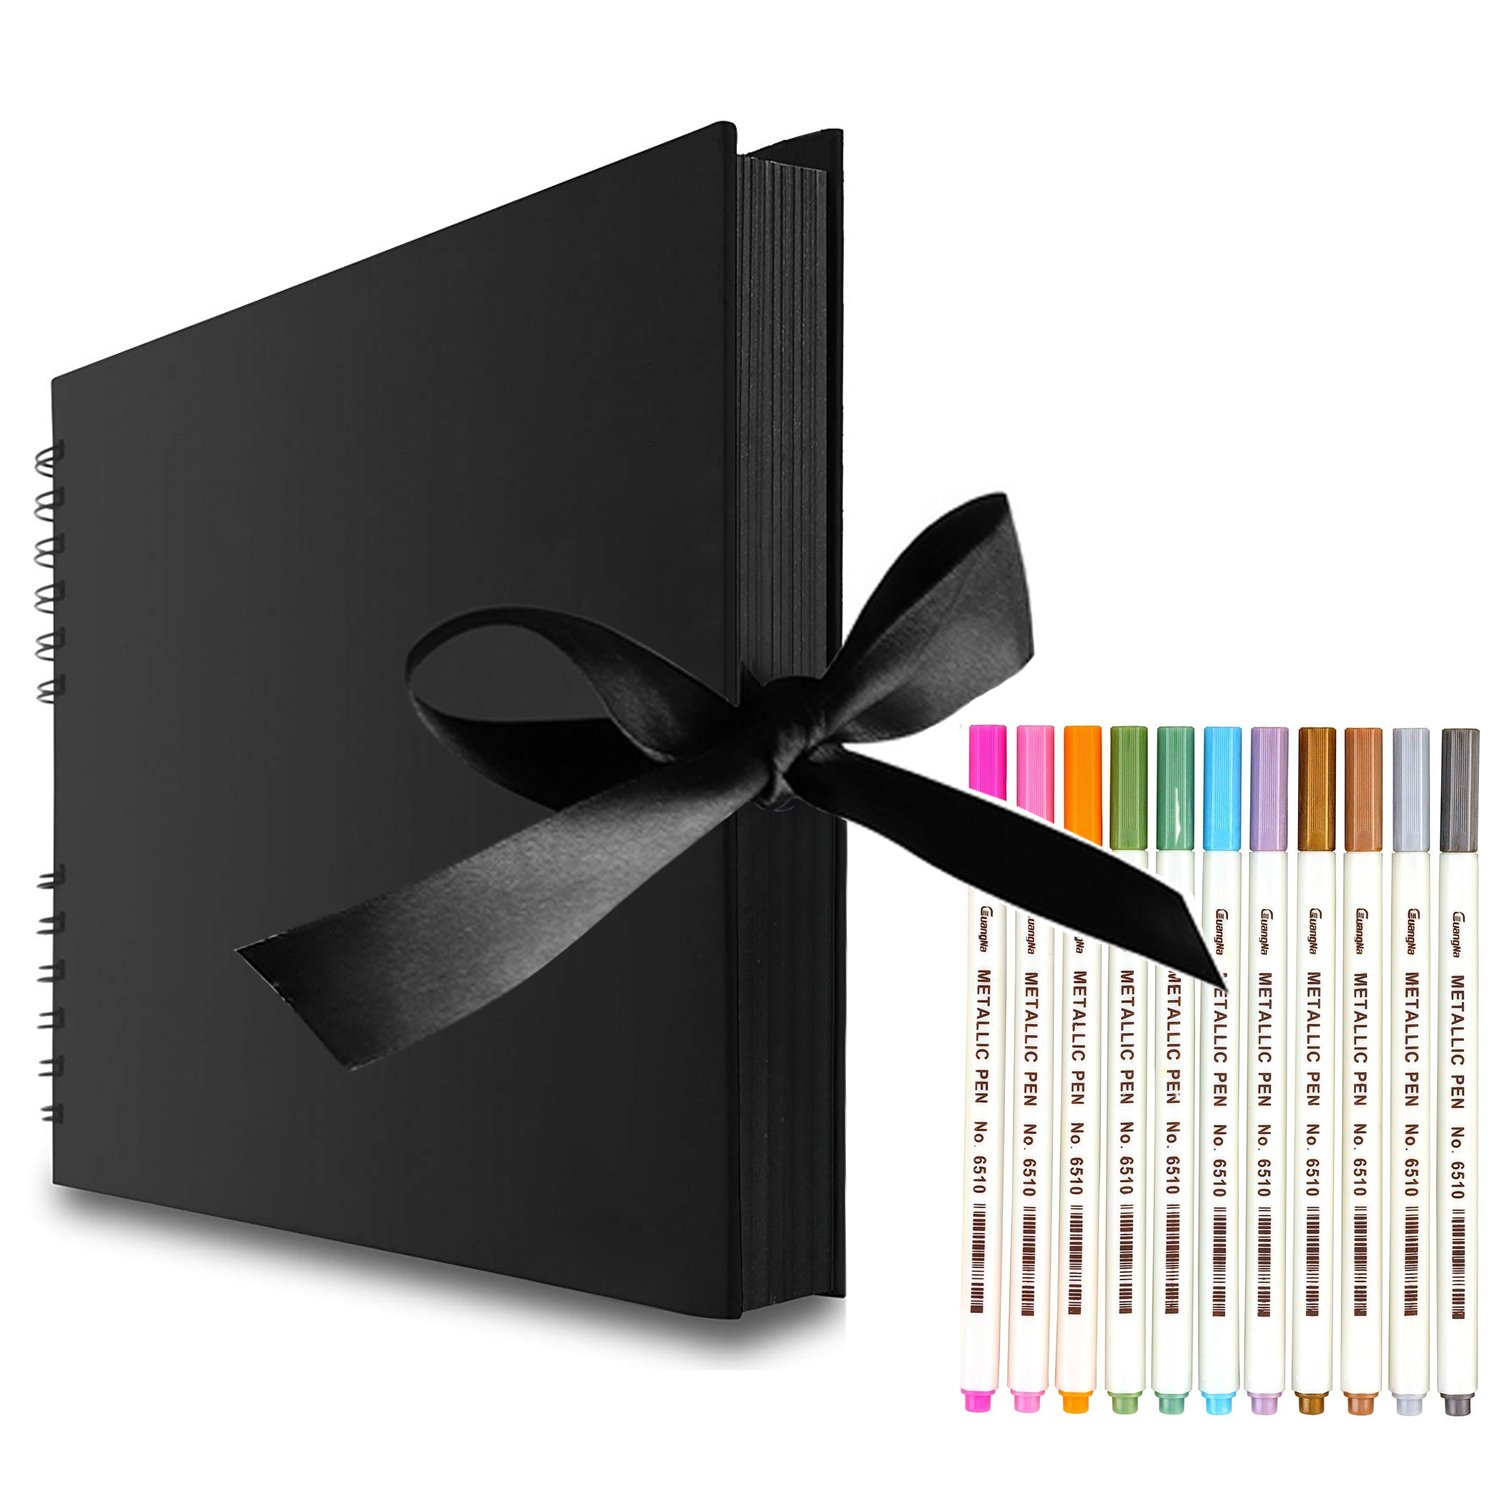 EVNEED Scrapbook Photo Album with Black Page 12x9,Black Cover (40 Sheets, 80 pages) With 12 Pcs Markers Paints Pens.